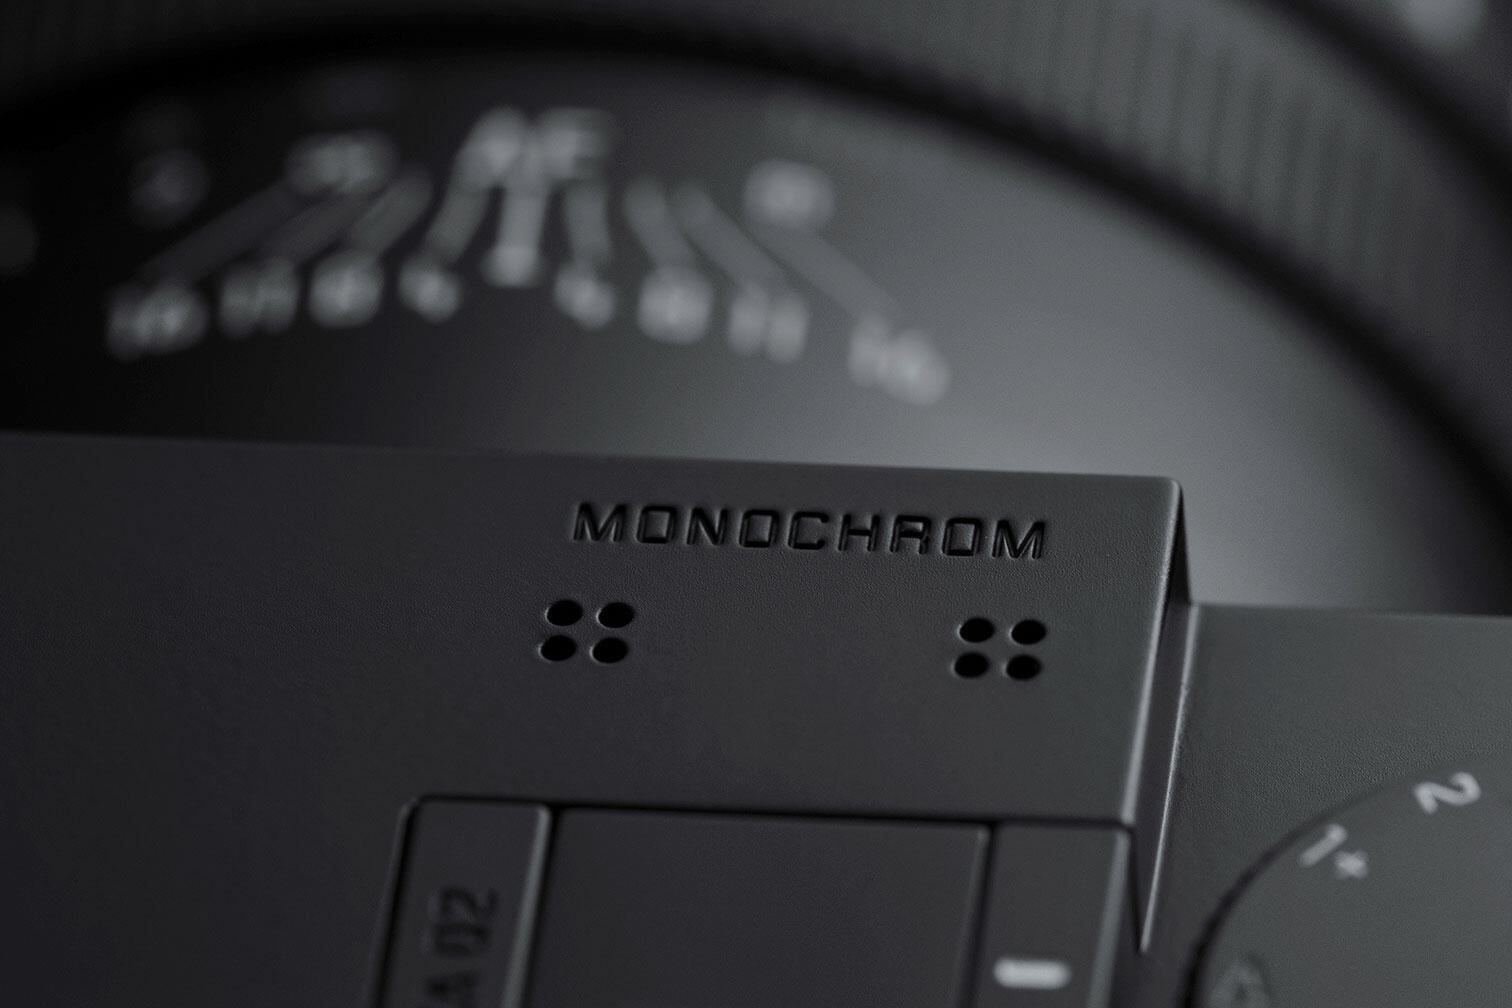 New firmware updates for Leica Q2 and Q2 Monochrom cameras with new Pixel Mapping - Leica Rumors